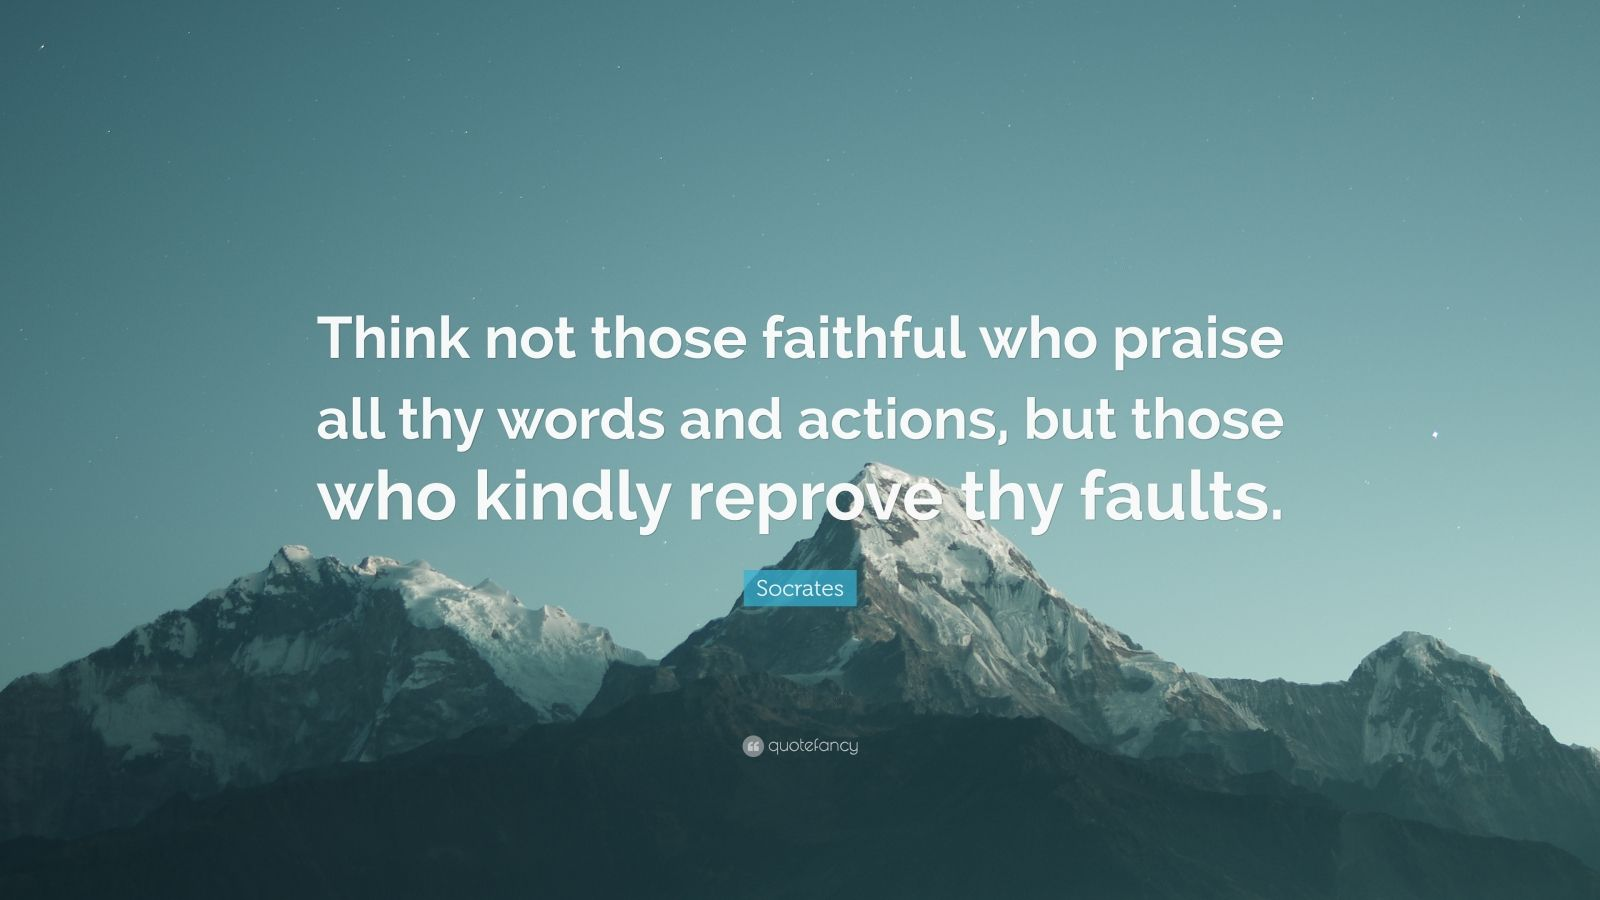 """Socrates Quote: """"Think not those faithful who praise all thy words and actions, but those who kindly reprove thy faults."""""""